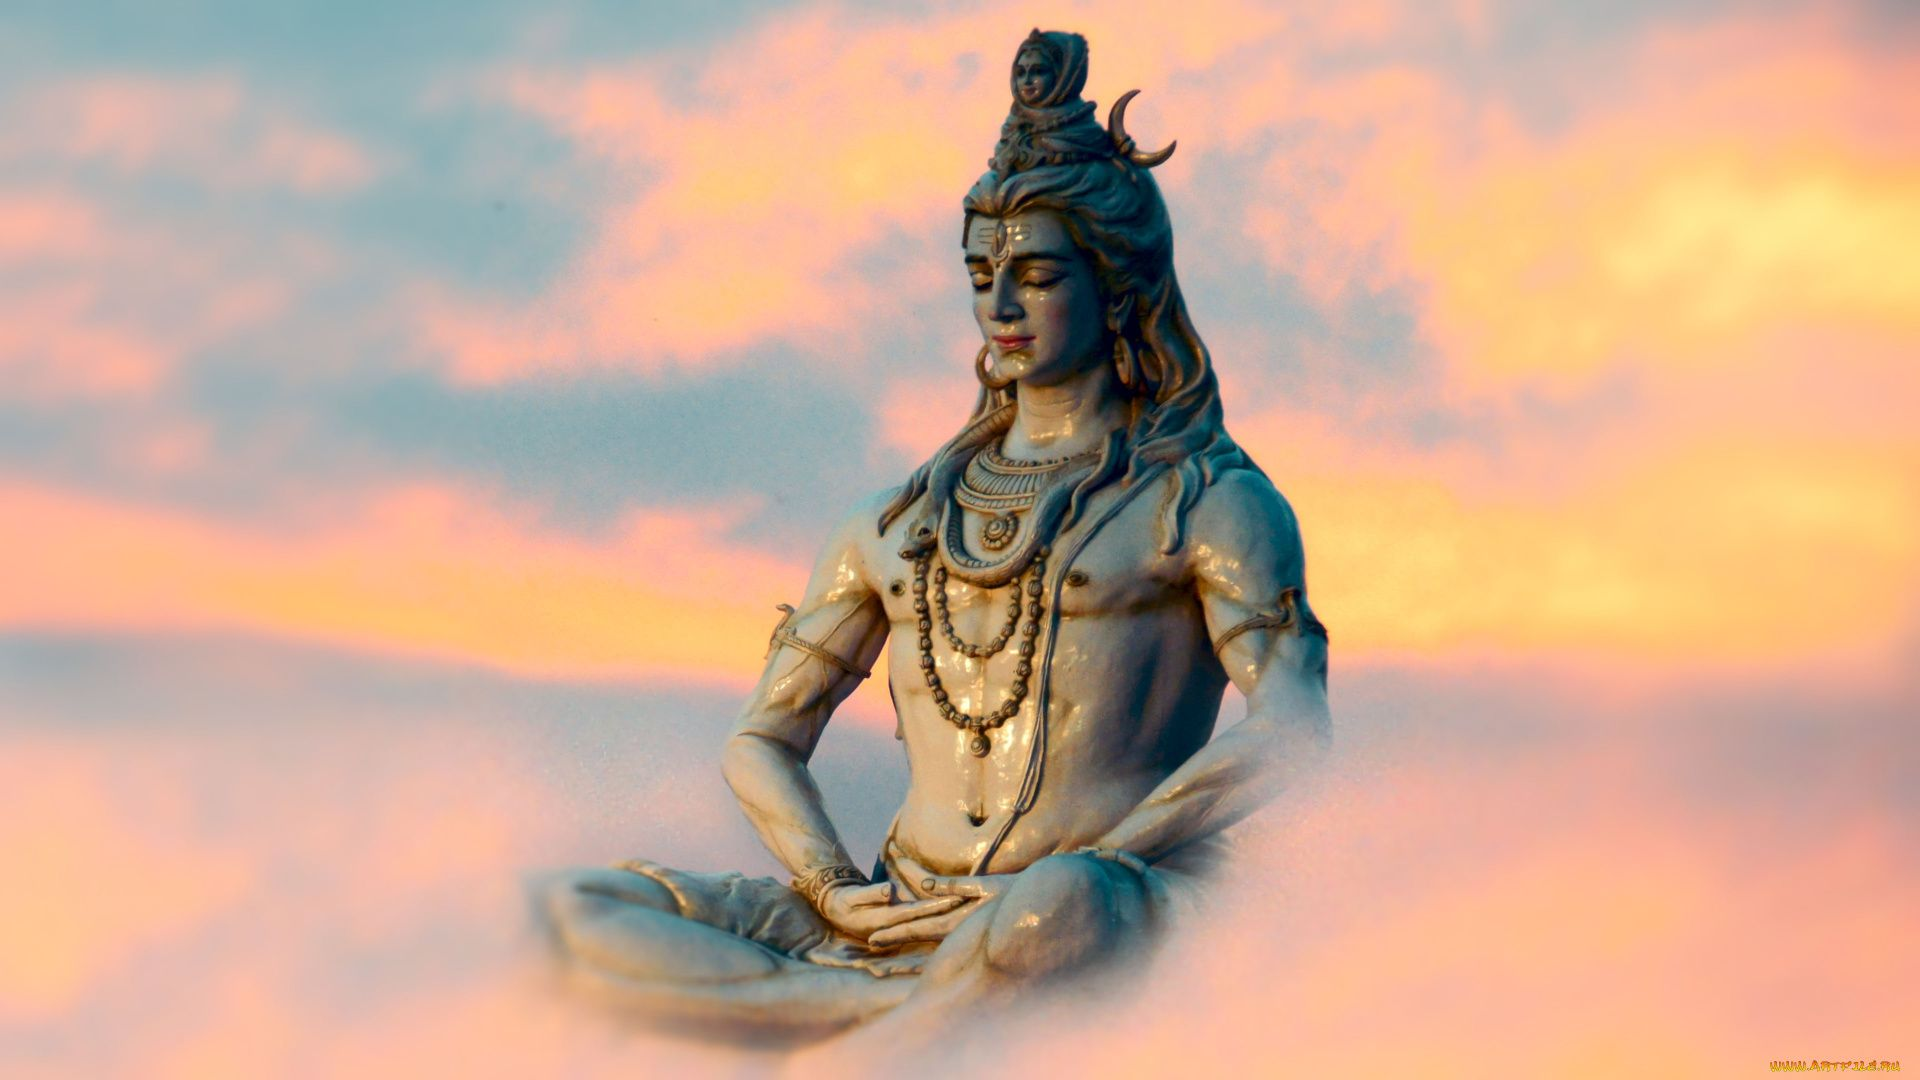 Shiva God background hd